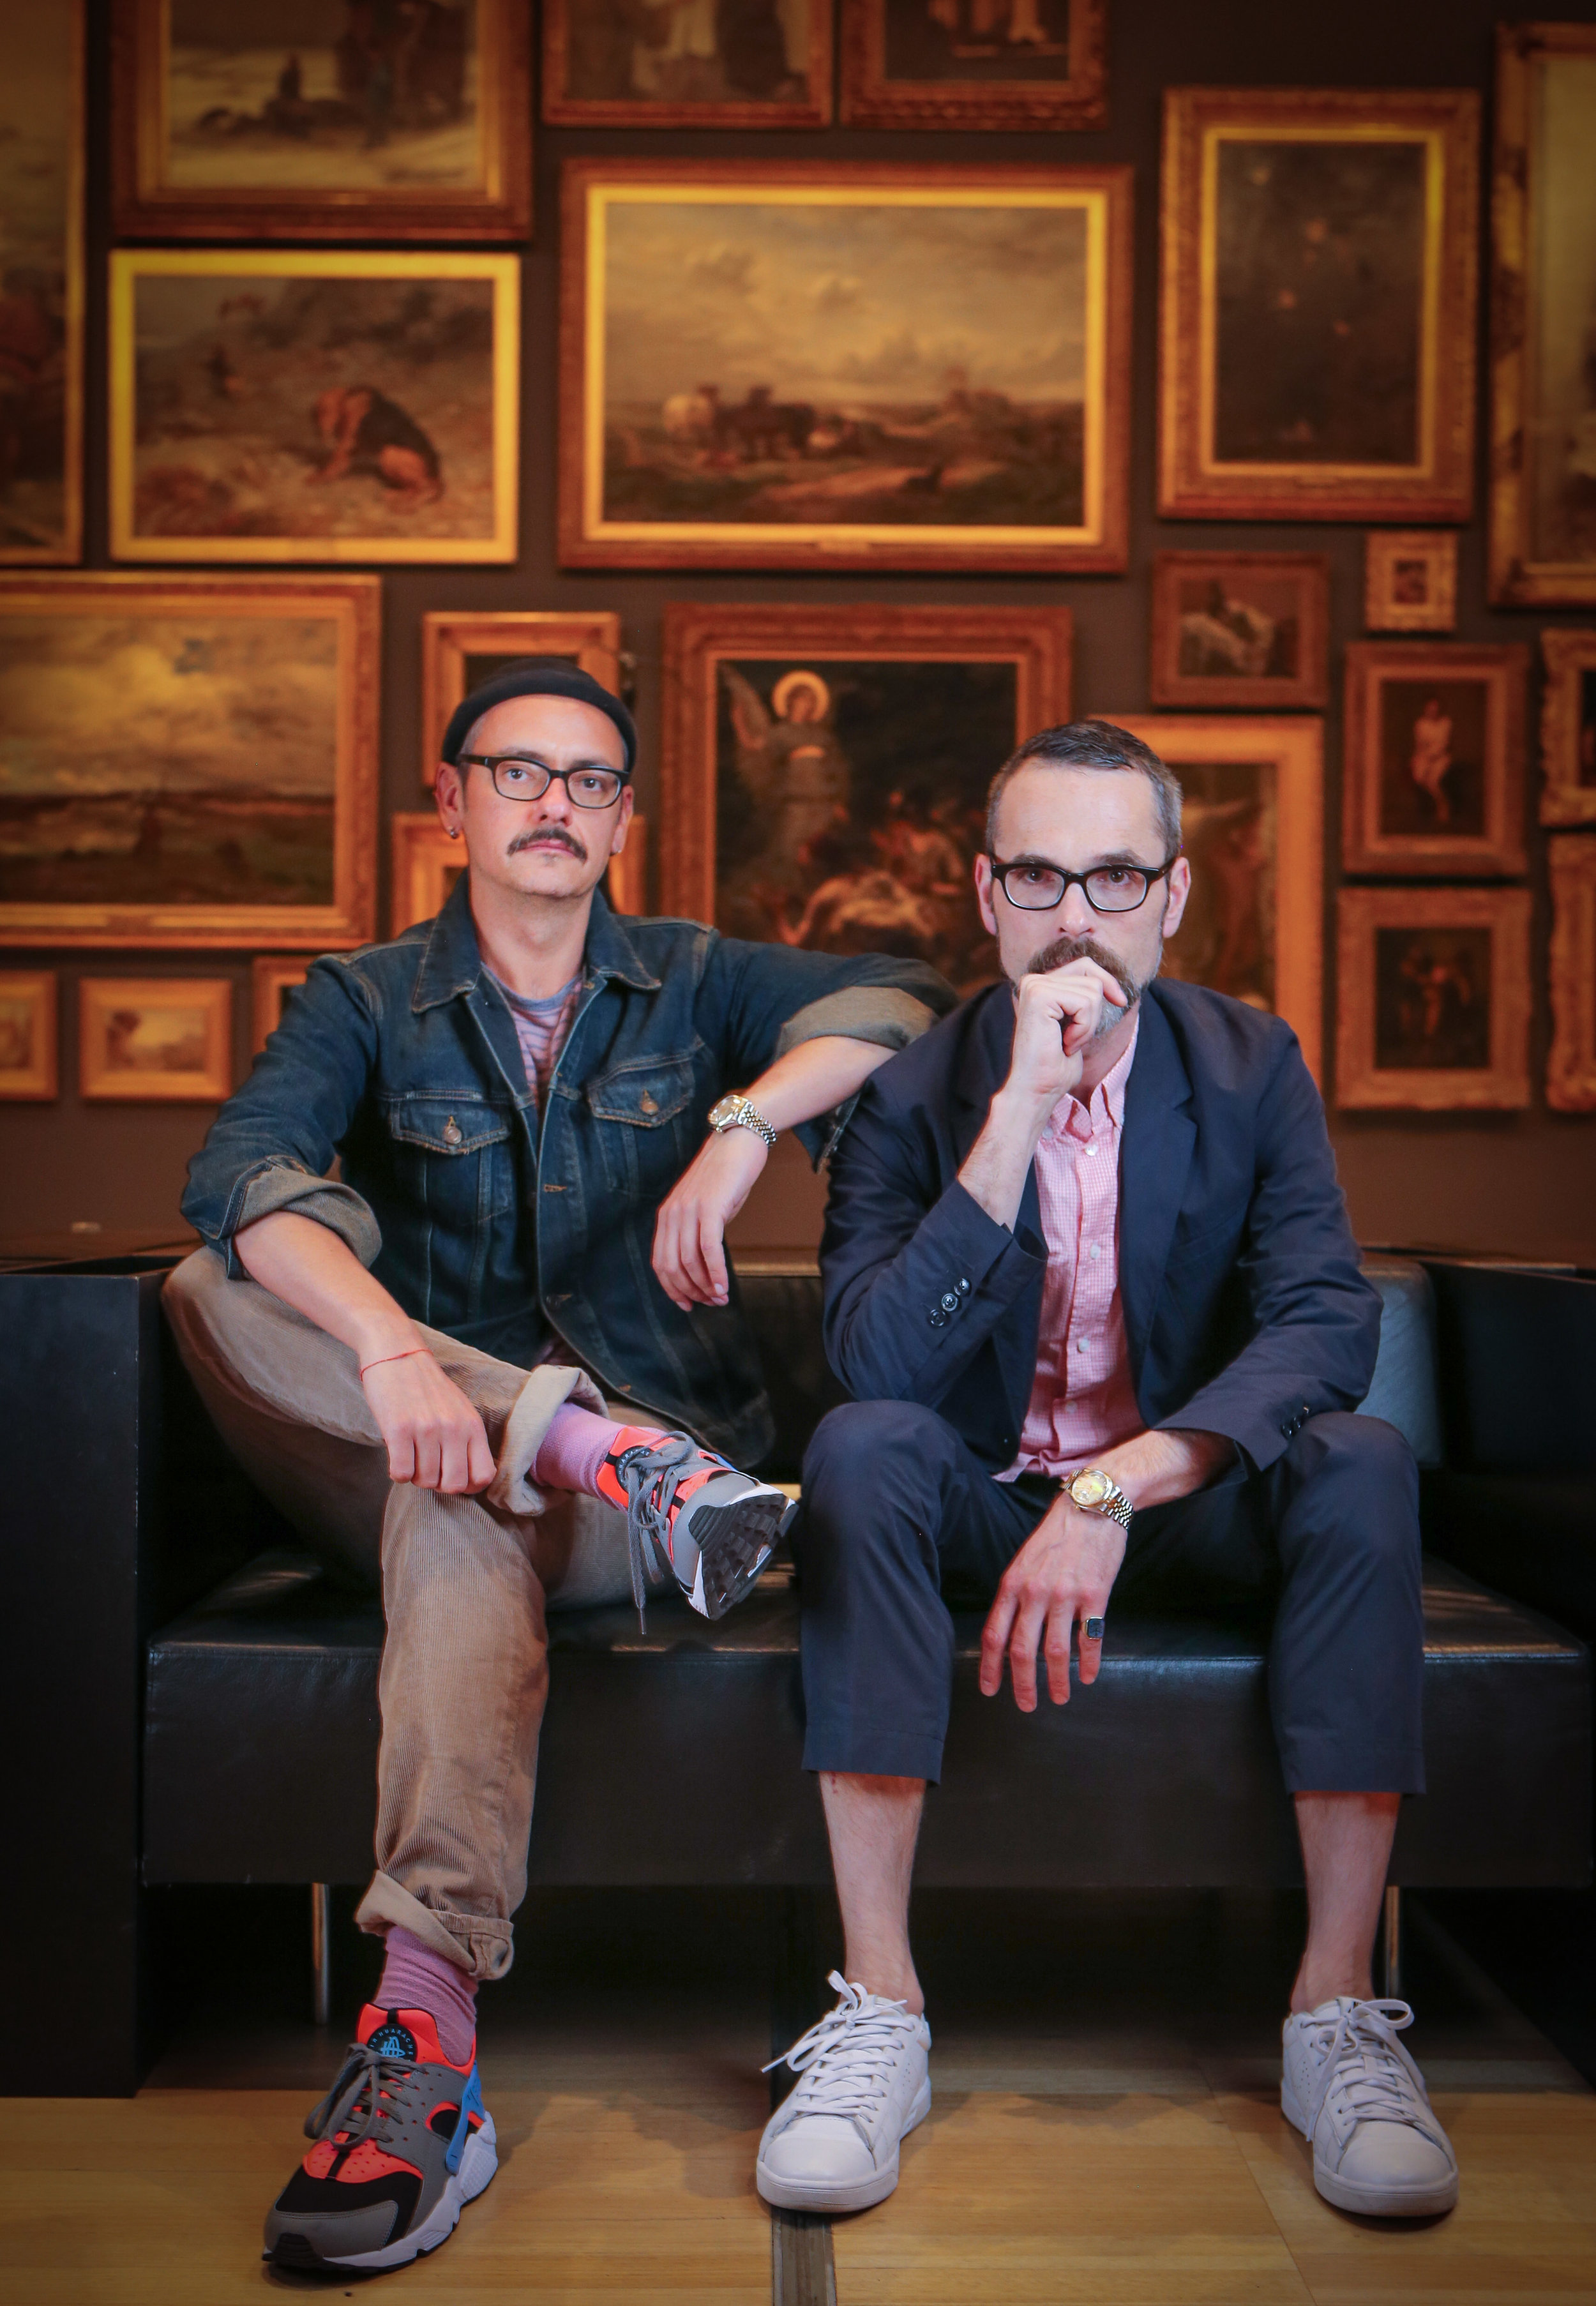 FASHION ARTISTS - VIKTOR&ROLF  Viktor&Rolf have extensively explored upcycling in Haute Couture Fashion in recent seasons.